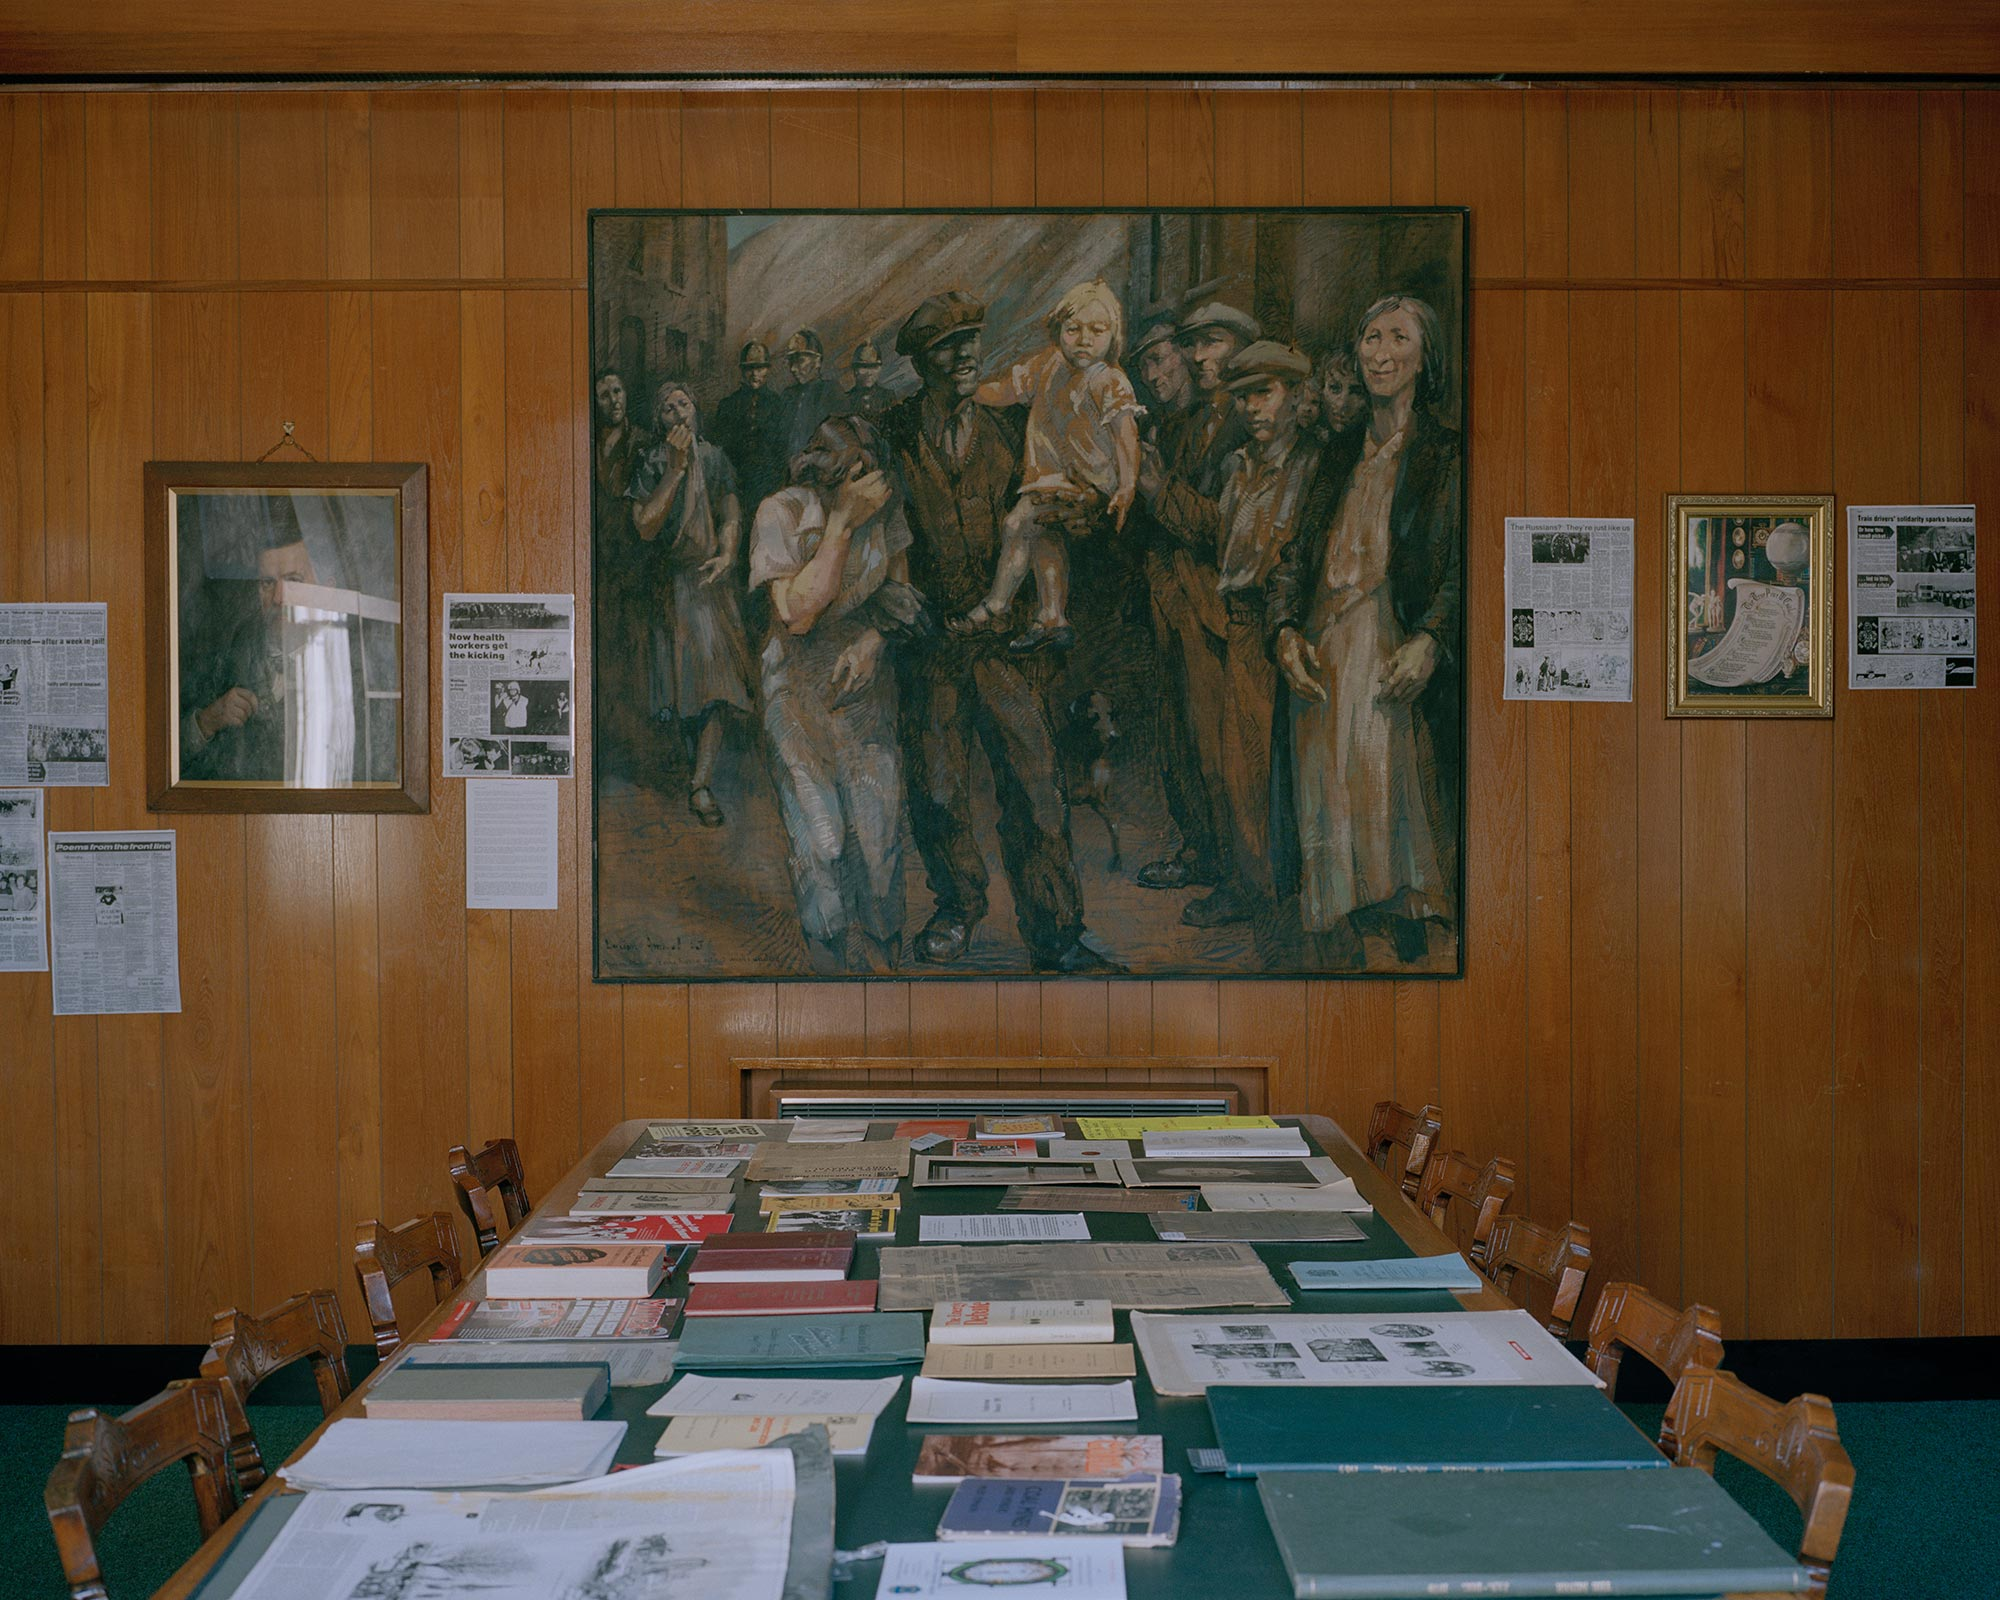 Artwork in the National Union of Mineworkers' collection, Barnsley, South Yorkshire.